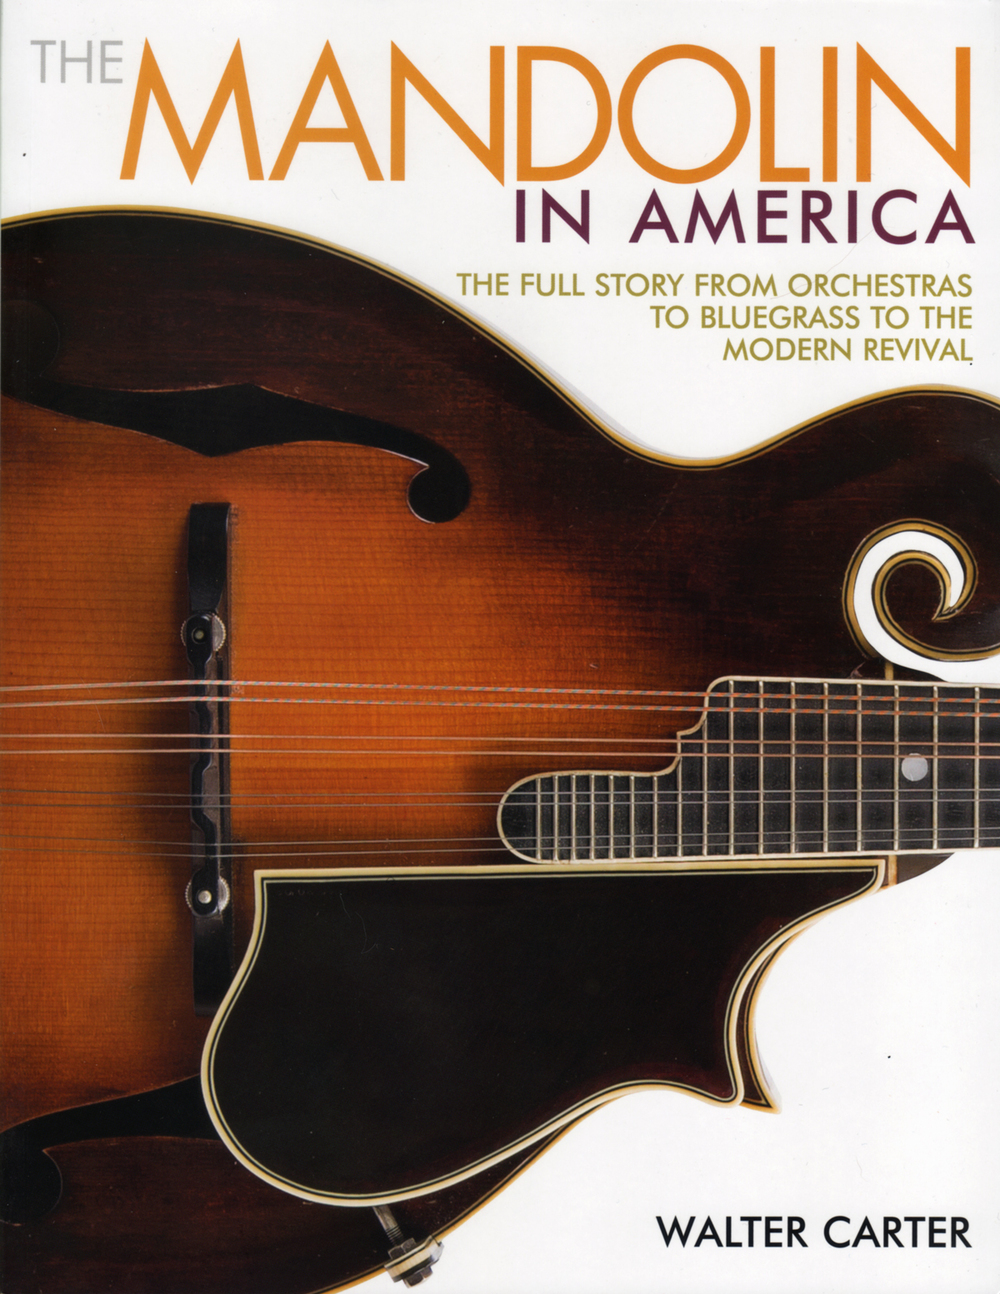 The Mandolin in America